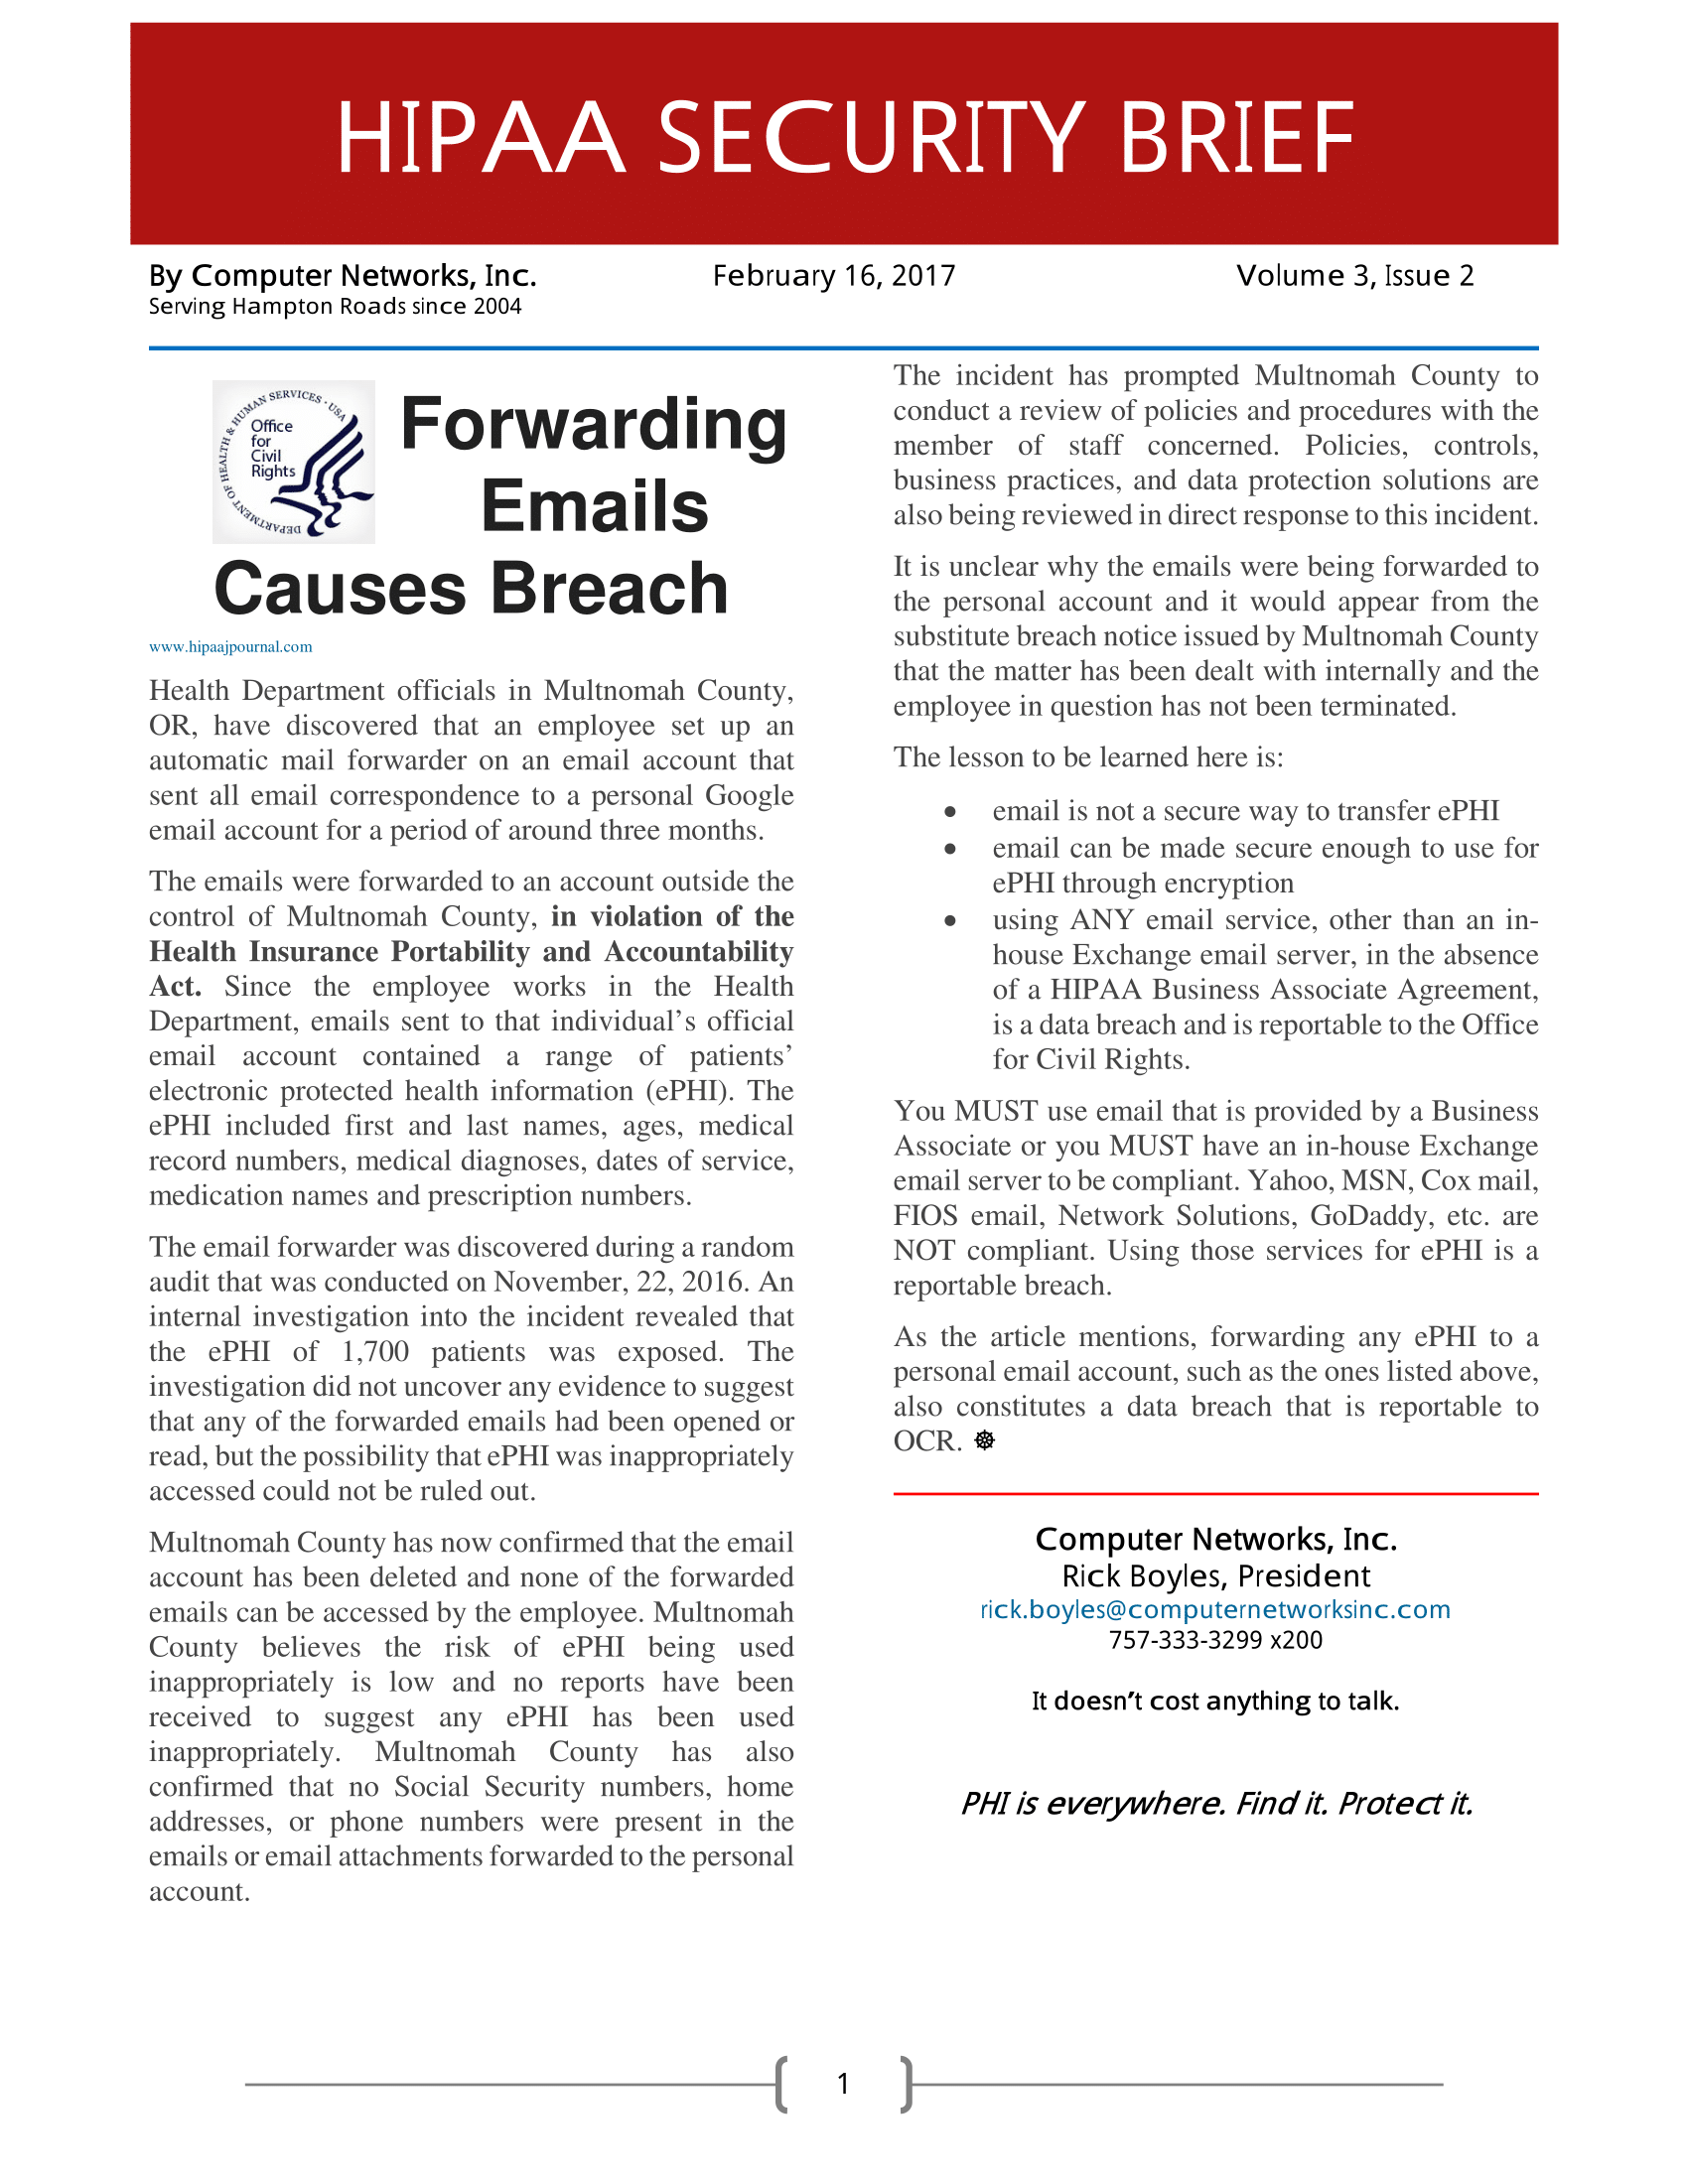 2016_11-vb-hipaa-newsletter-id-33265-1